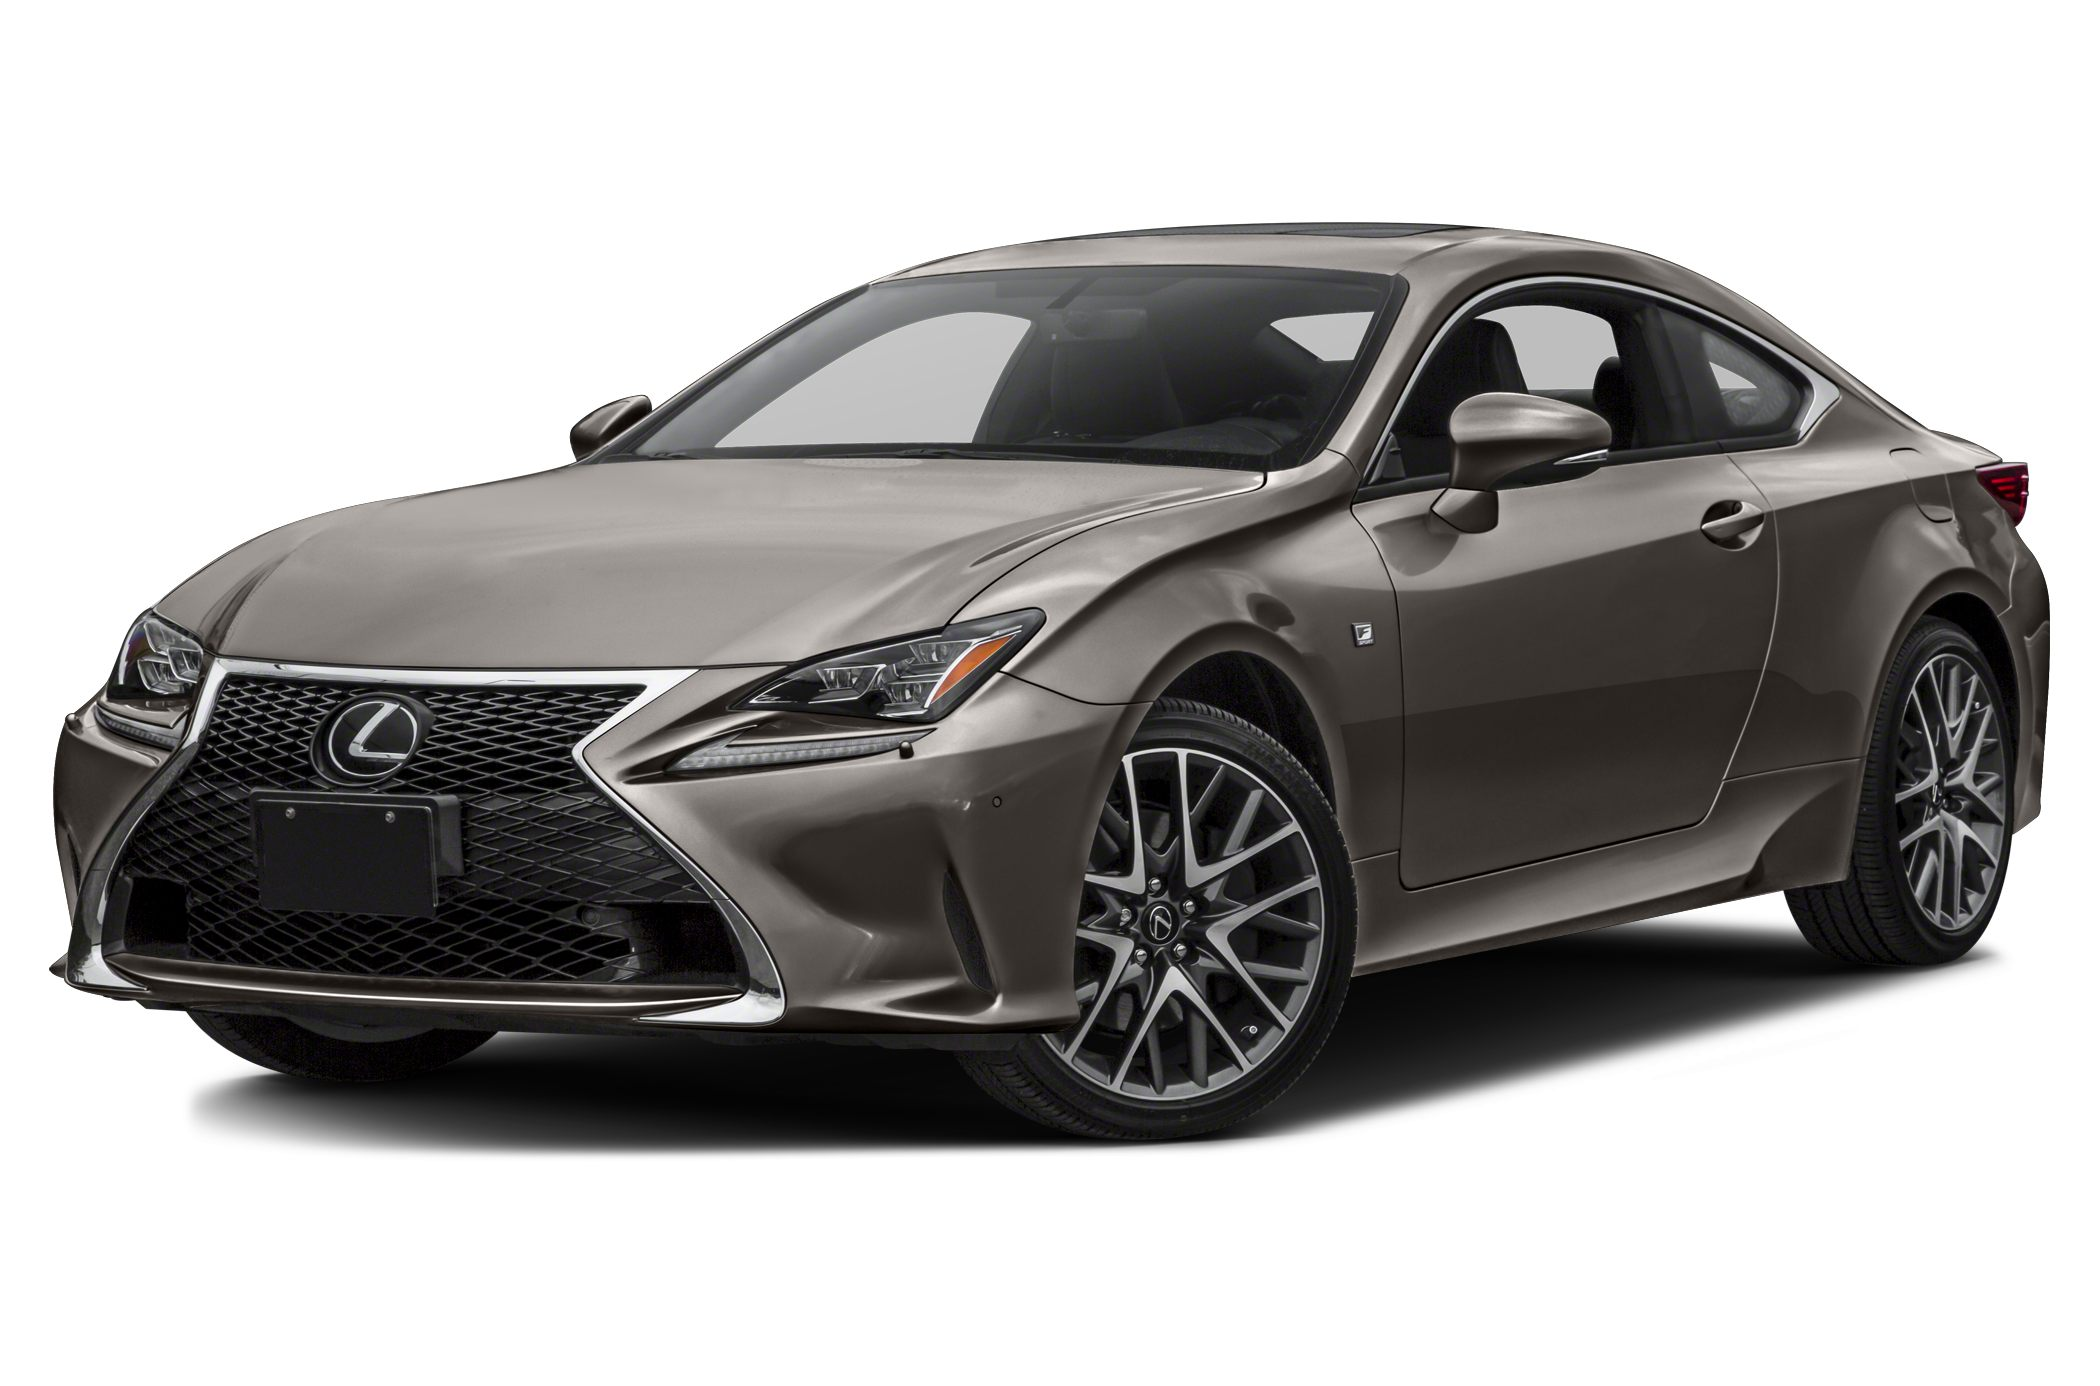 2015 Lexus RC 350 Base Coupe for sale in Escondido for $53,058 with 8 miles